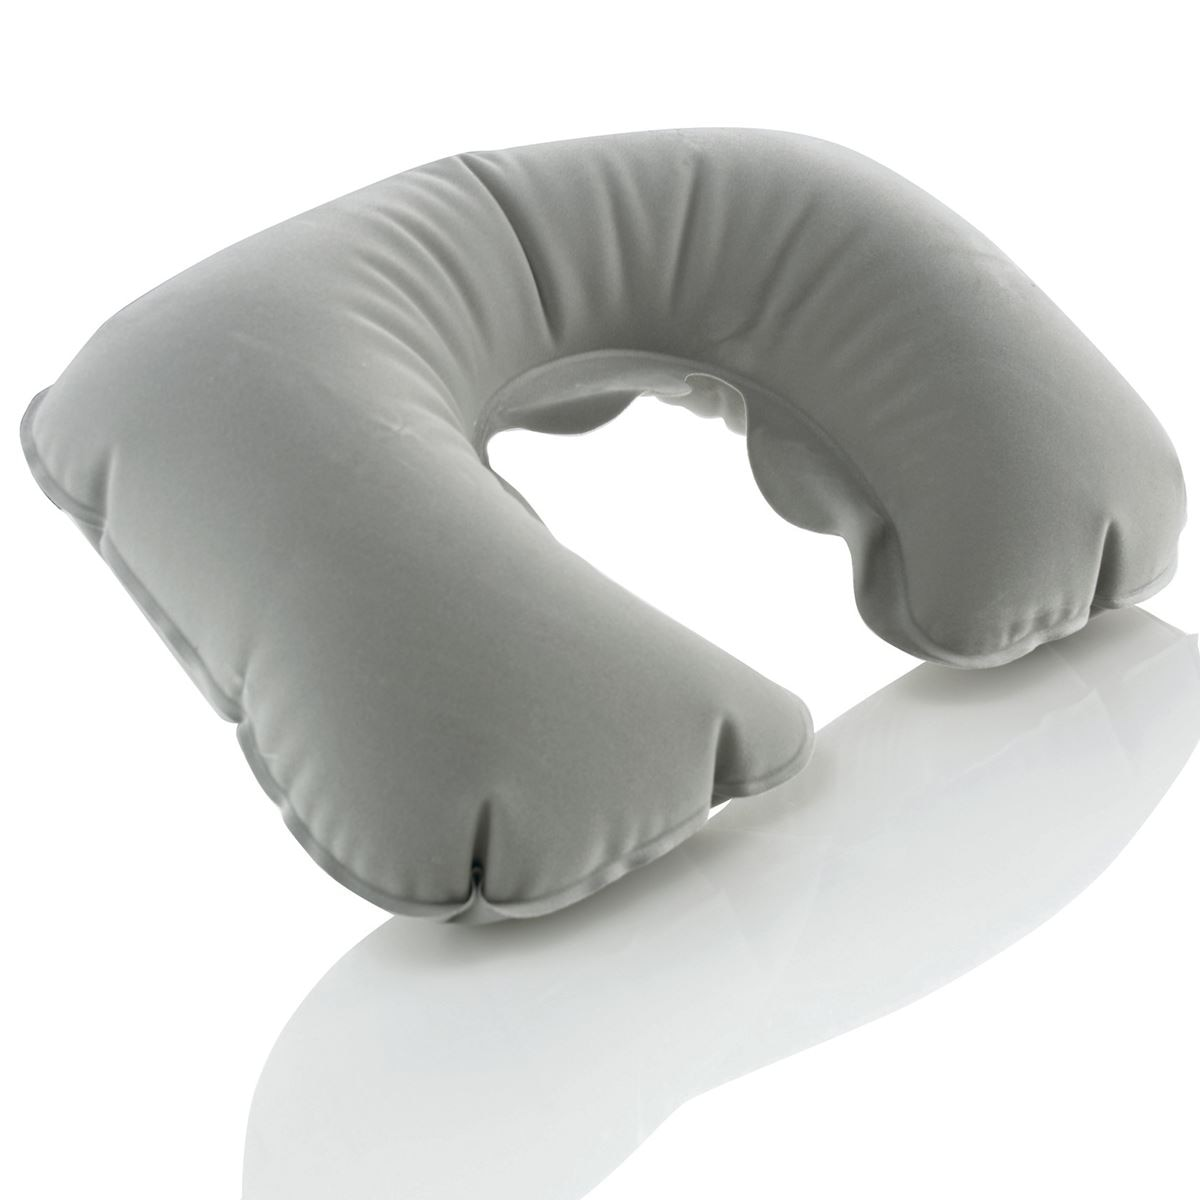 Cojín Inflable para Cuello